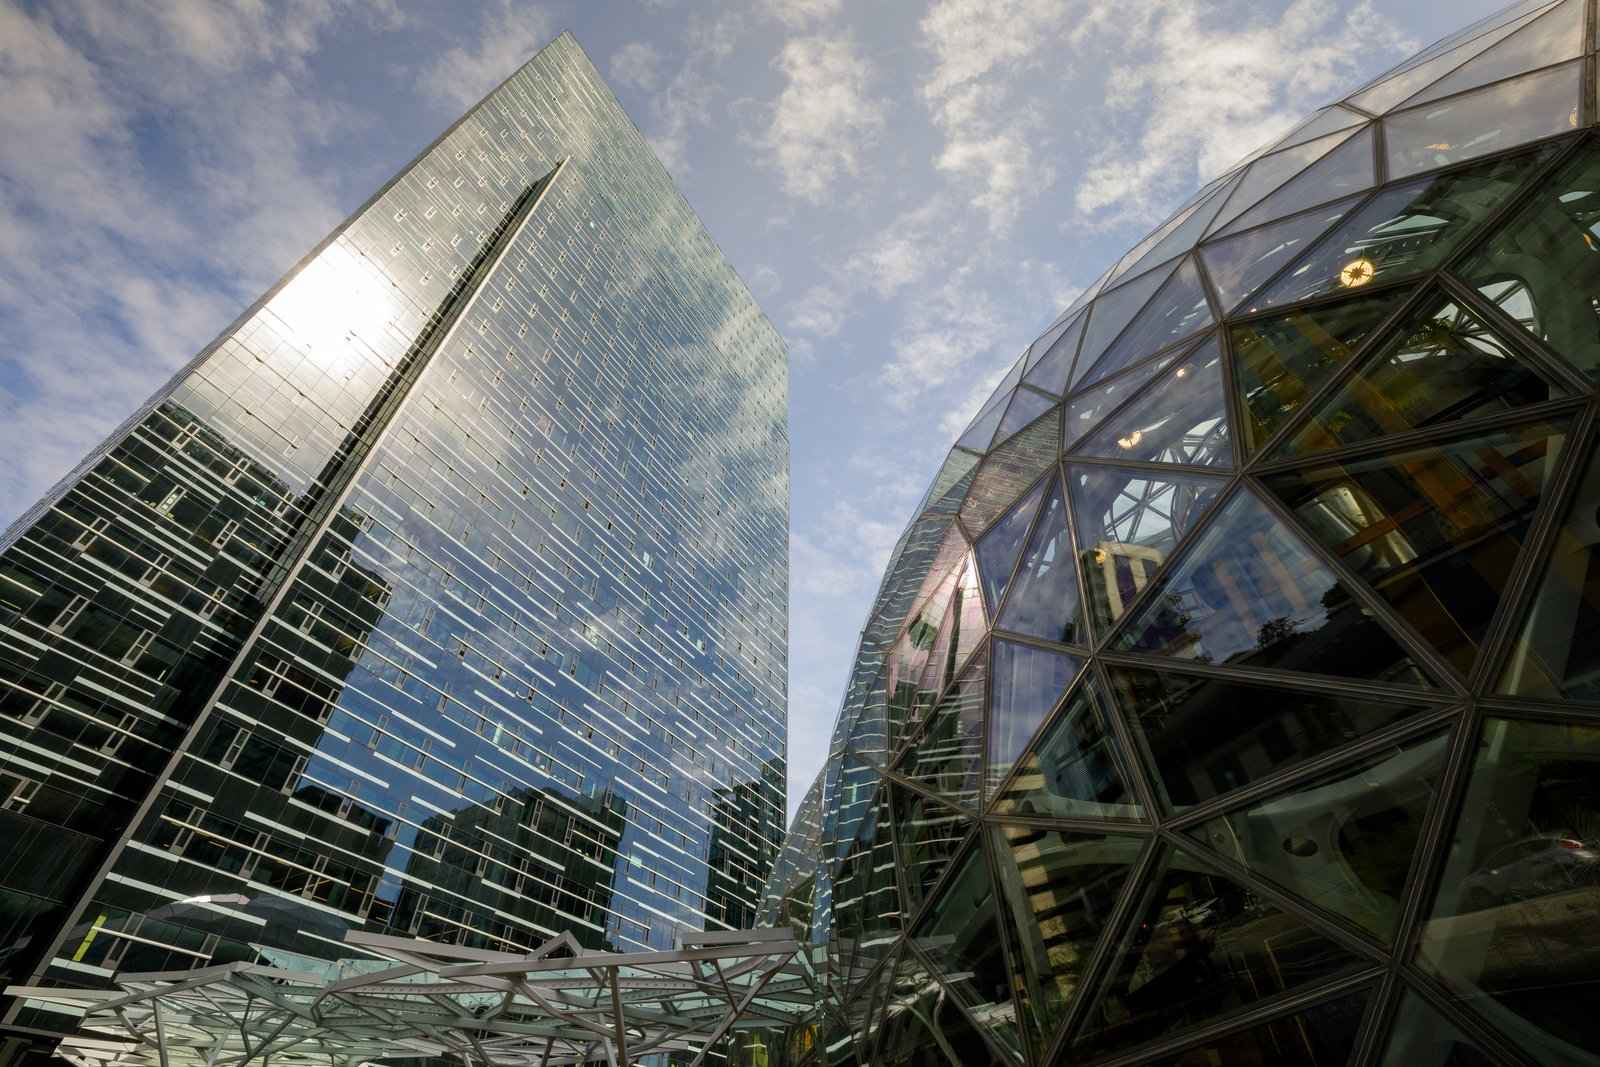 Exterior, Glass Siding Material, and Dome RoofLine The Spheres form a dramatic addition to the Amazon headquarters and a landmark in downtown Seattle, demonstrating the company's long-standing commitment to the city of which it is a part.  Photo 5 of 9 in Meet Downtown Seattle's Newest Landmark: The Amazon Spheres